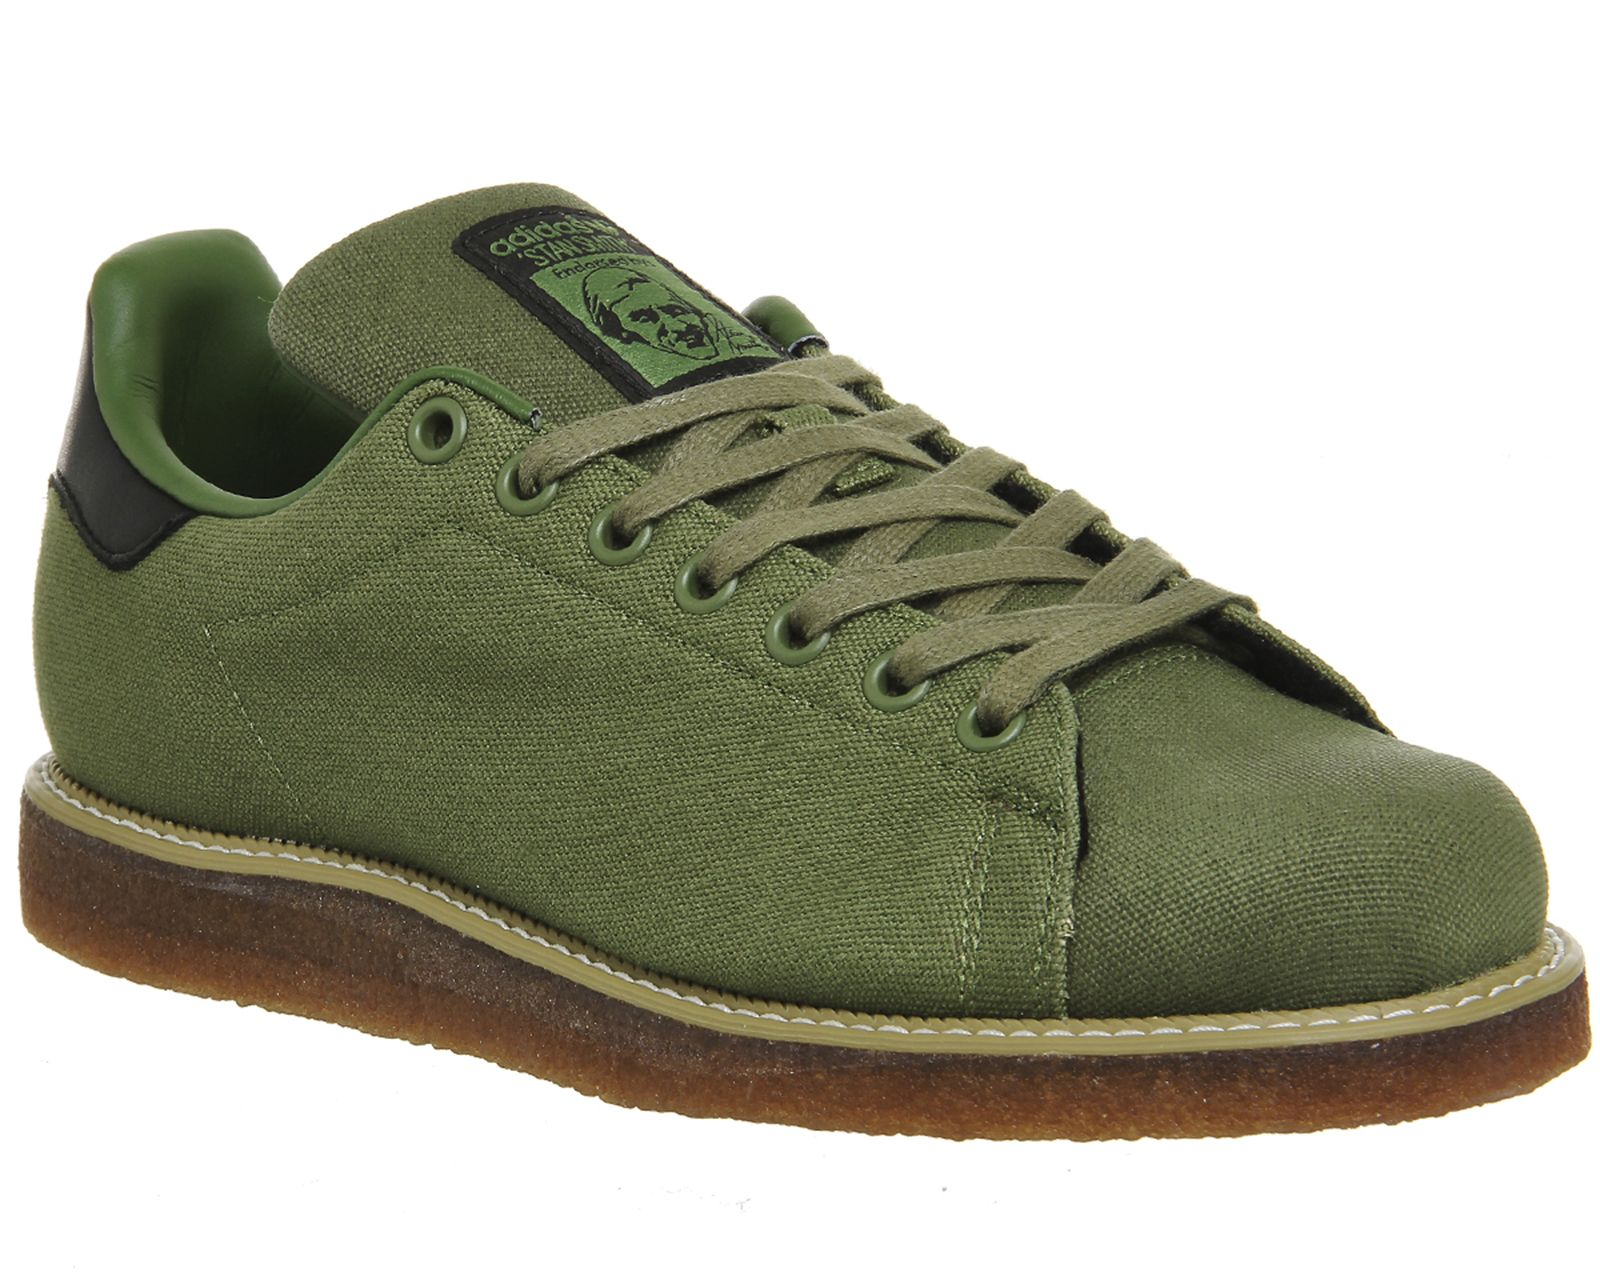 Adidas Stan Smith Wedge Parker Green Offspring 20 - His trainers